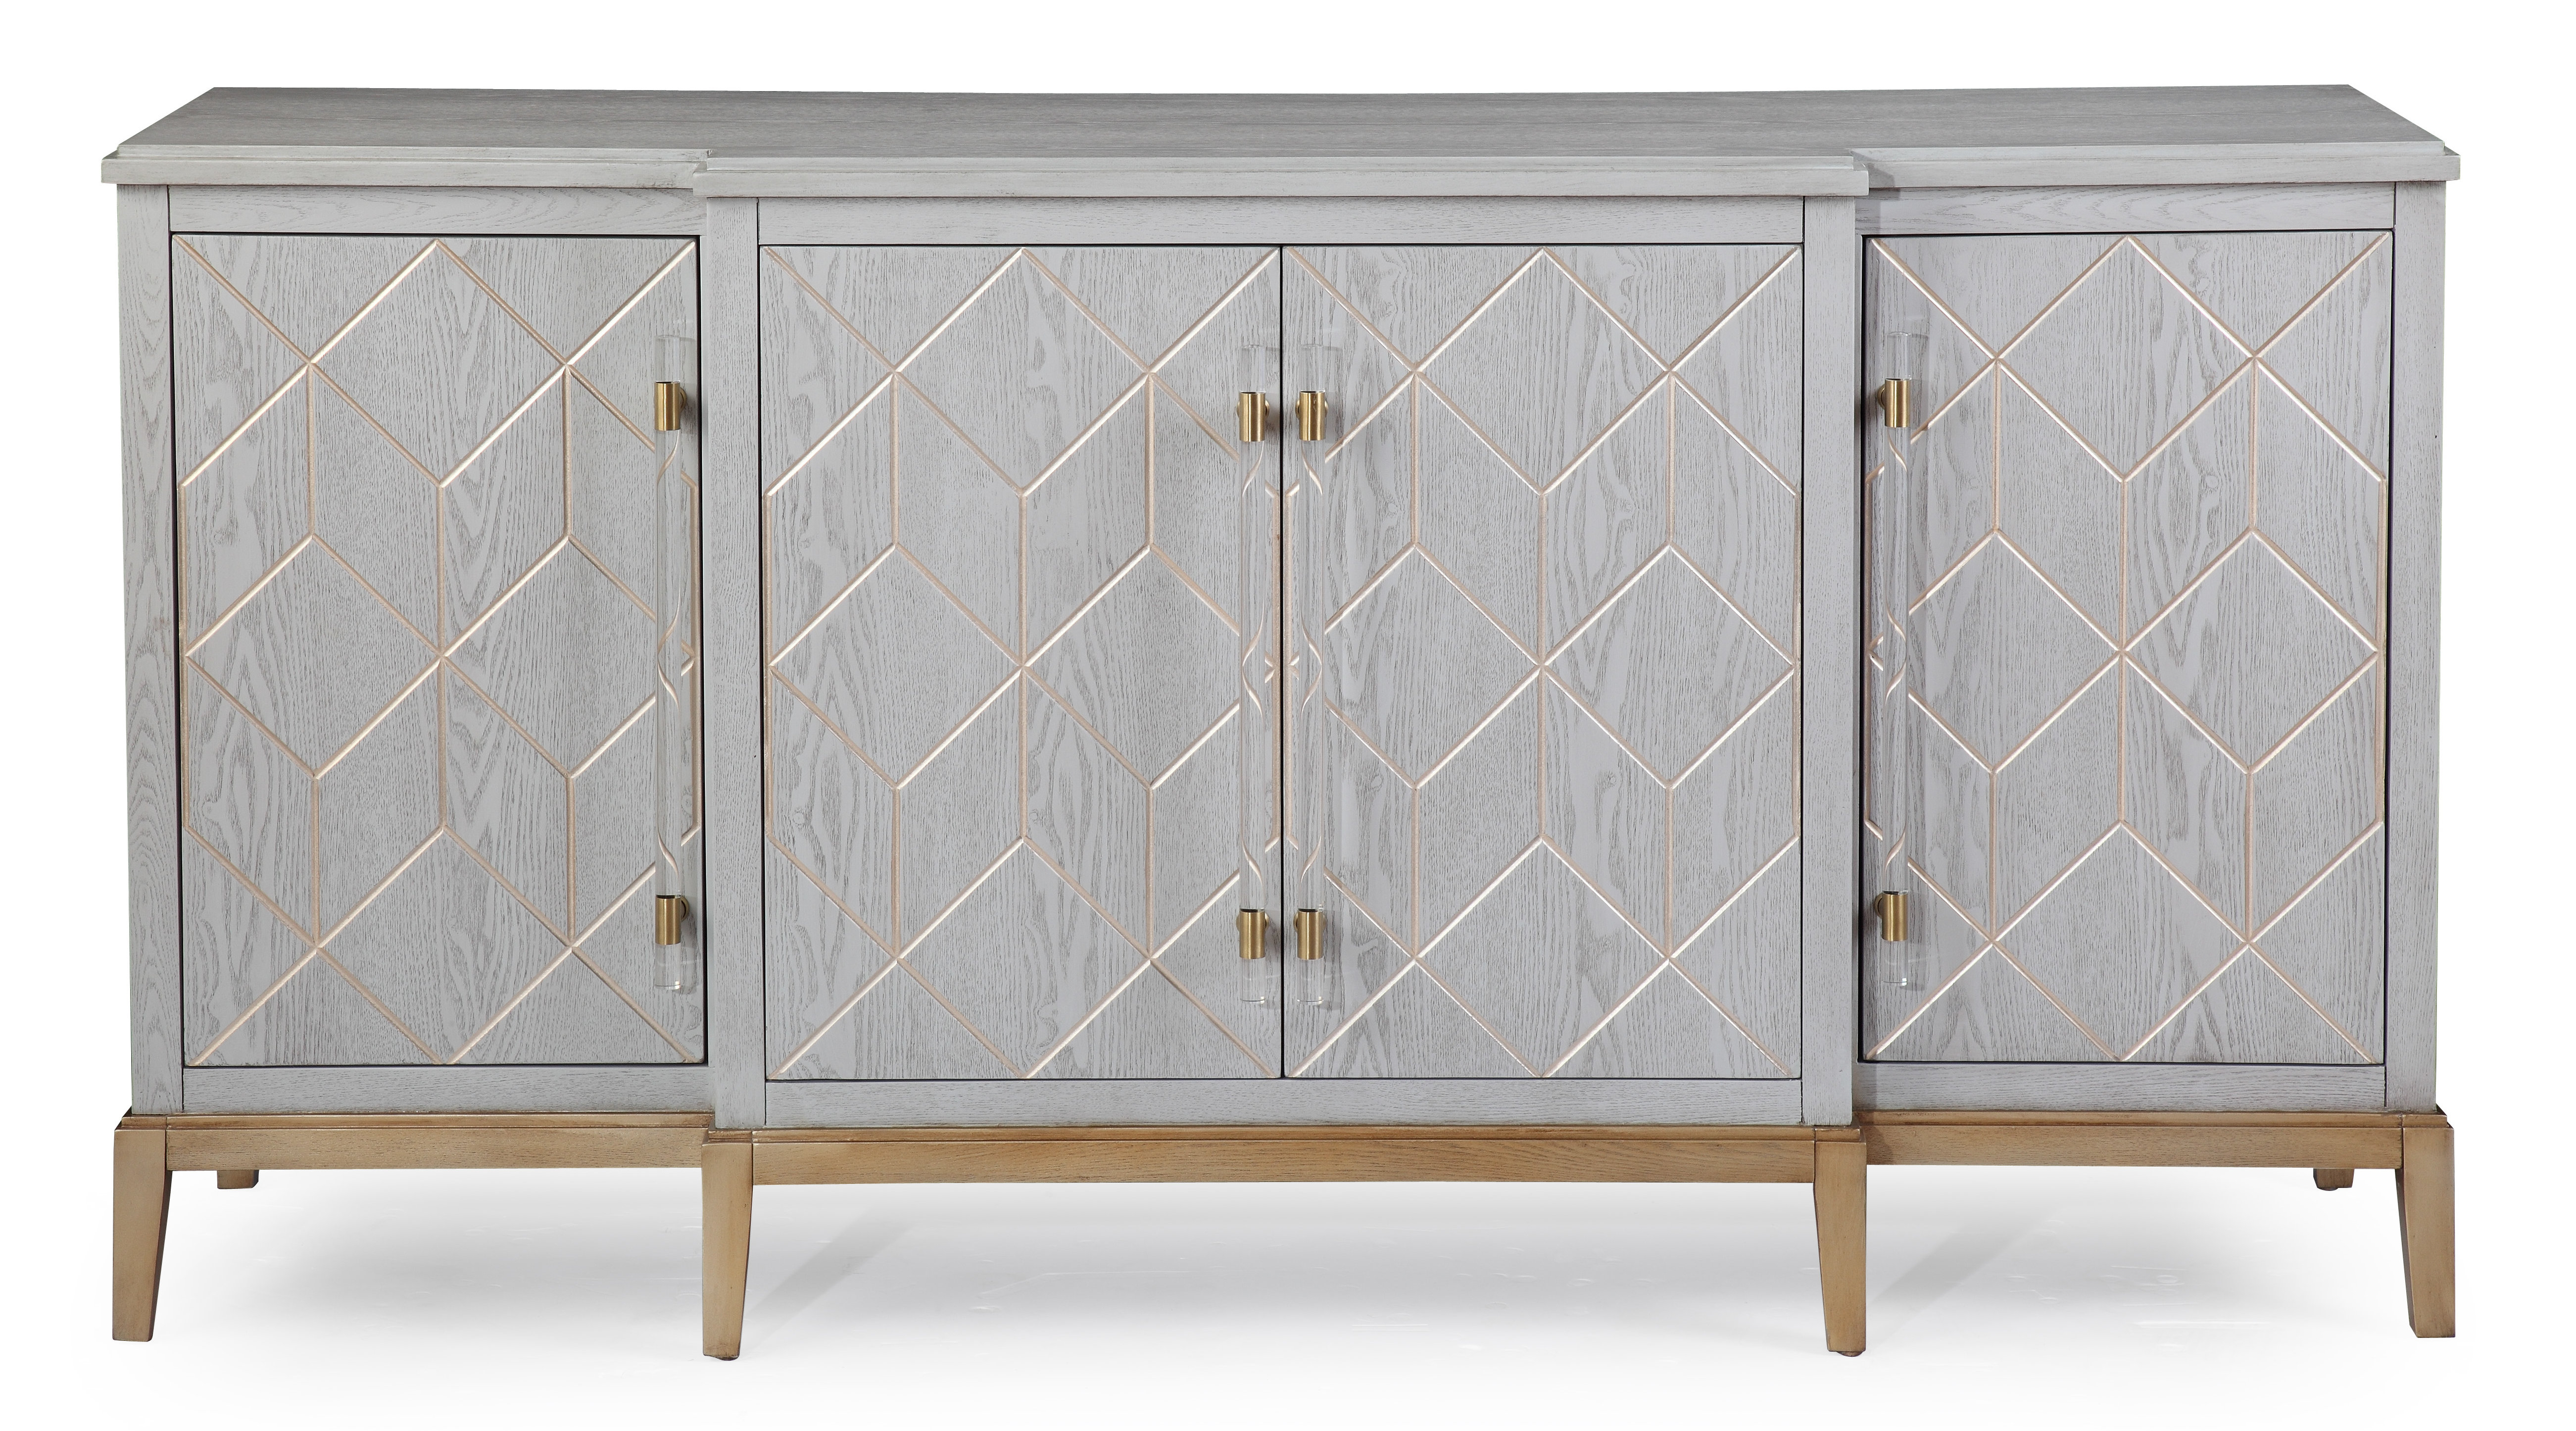 Farmhouse & Rustic Sideboards & Buffets | Birch Lane Intended For Raunds Sideboards (Gallery 22 of 30)